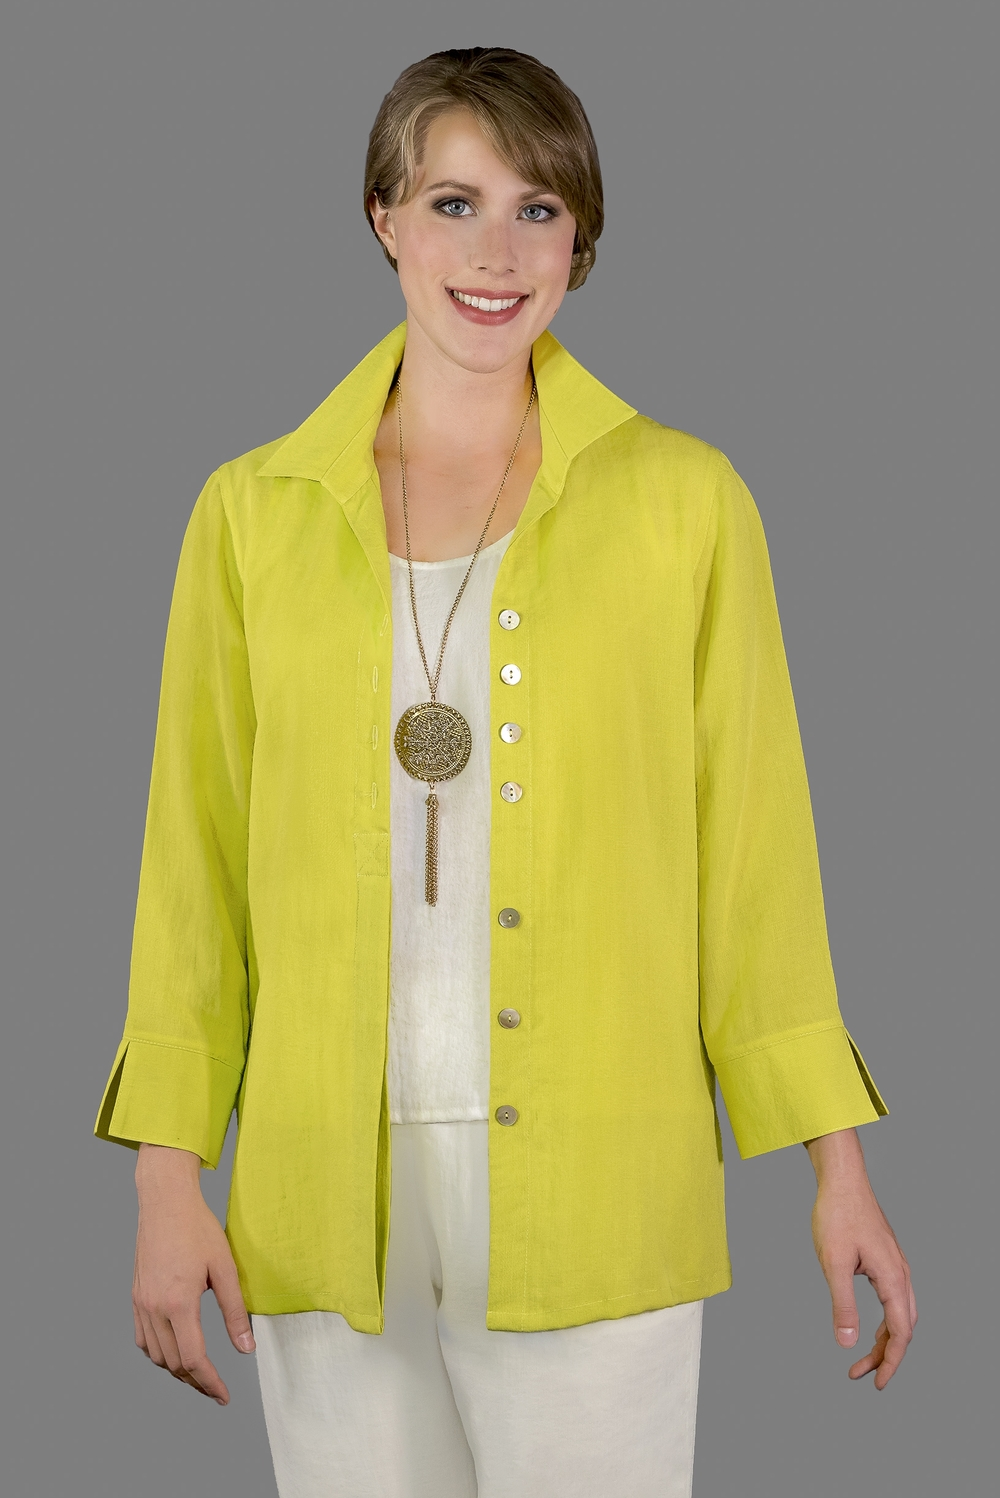 AA192 - Eleanor Blouse    CL2593 - Citron